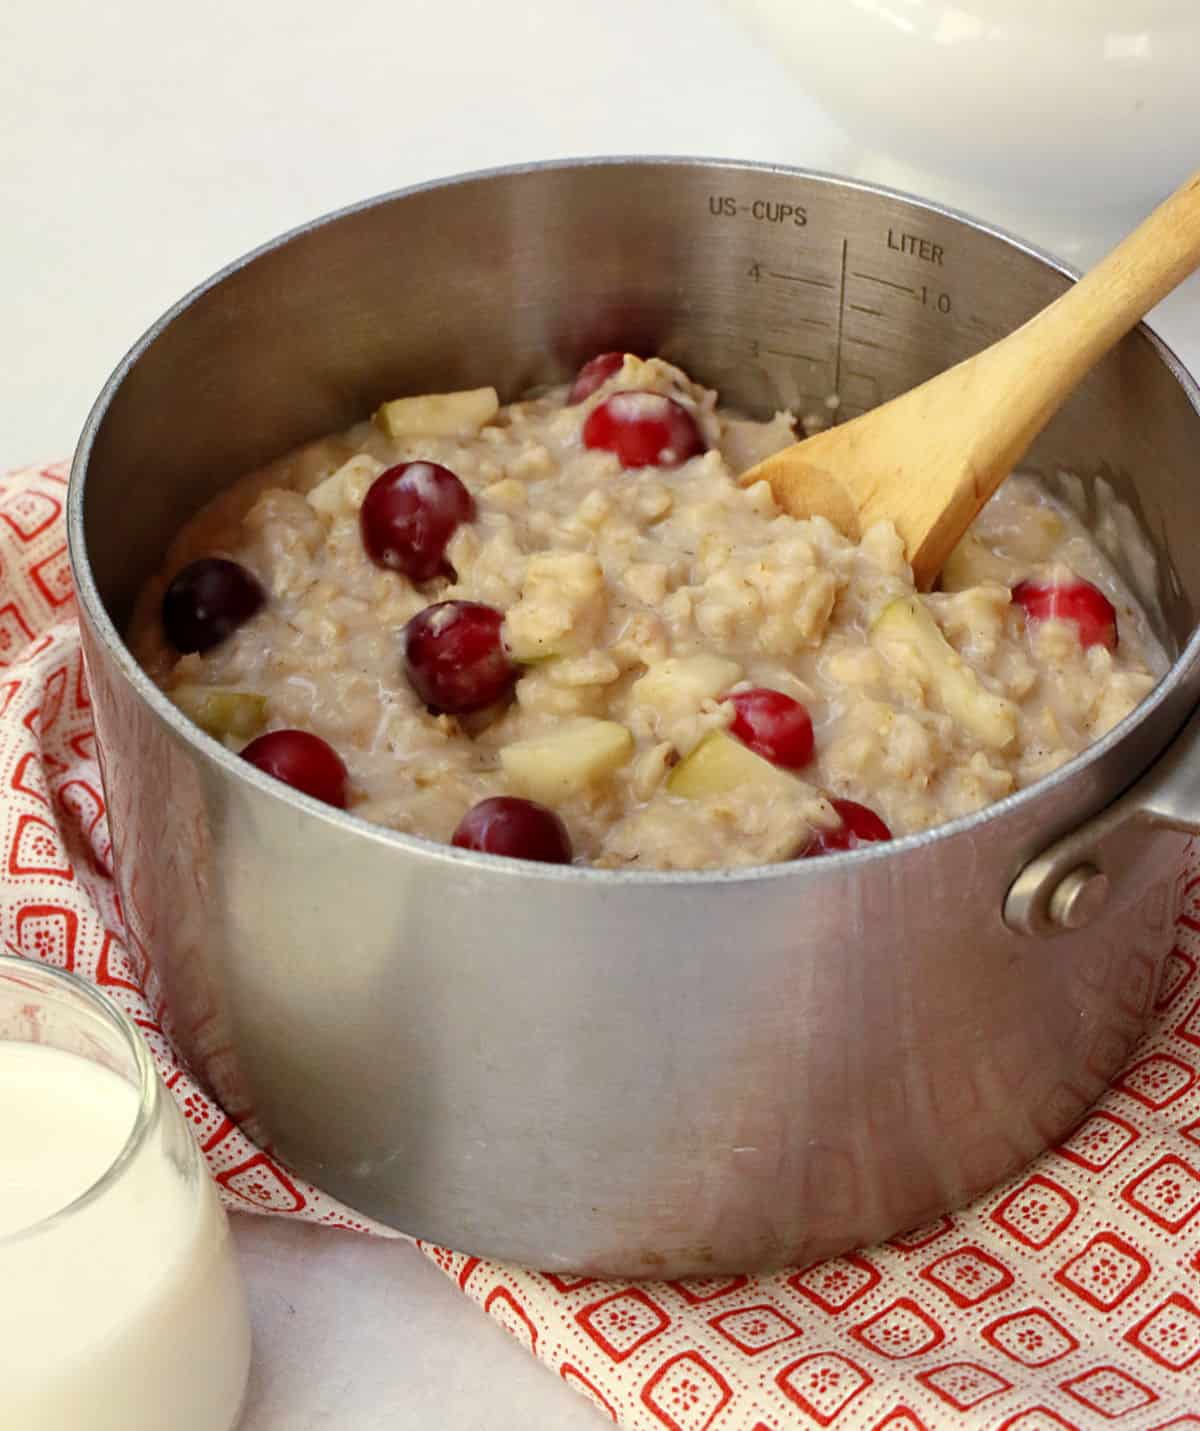 A silver pan filled with cooked oatmeal with cranberries